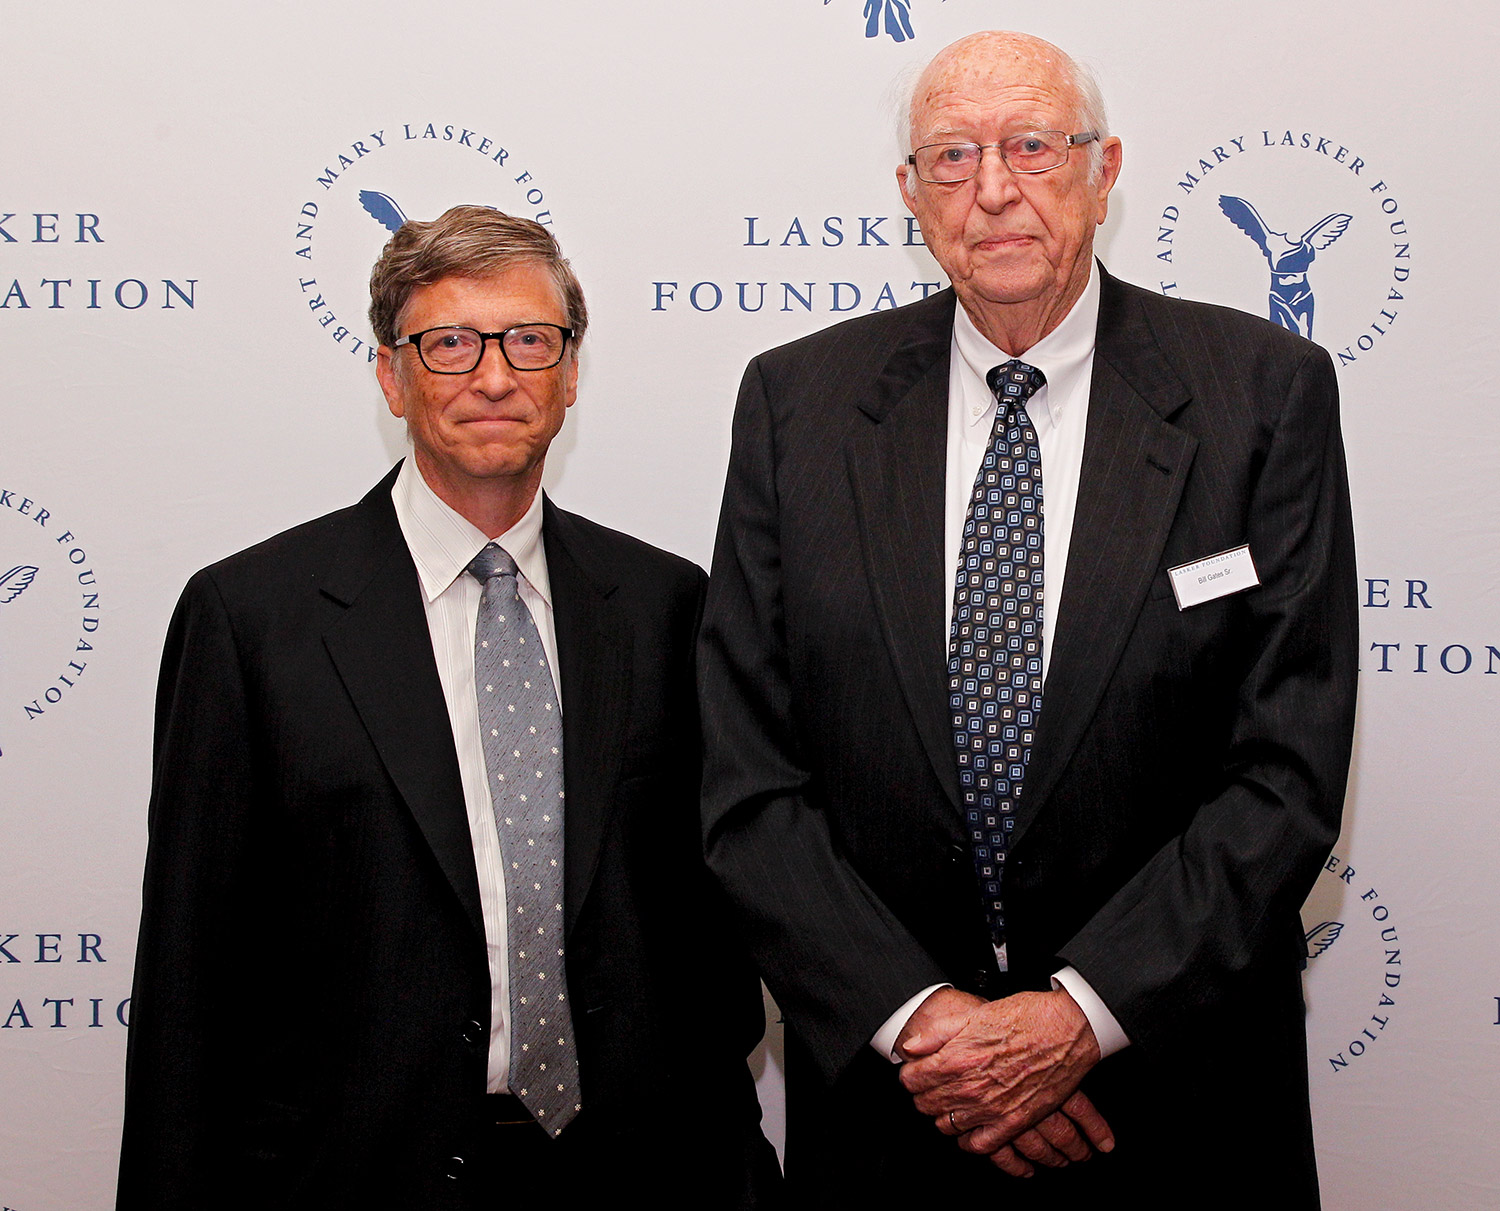 Bill Gates, Sr. are seen during the The Lasker Awards 2013